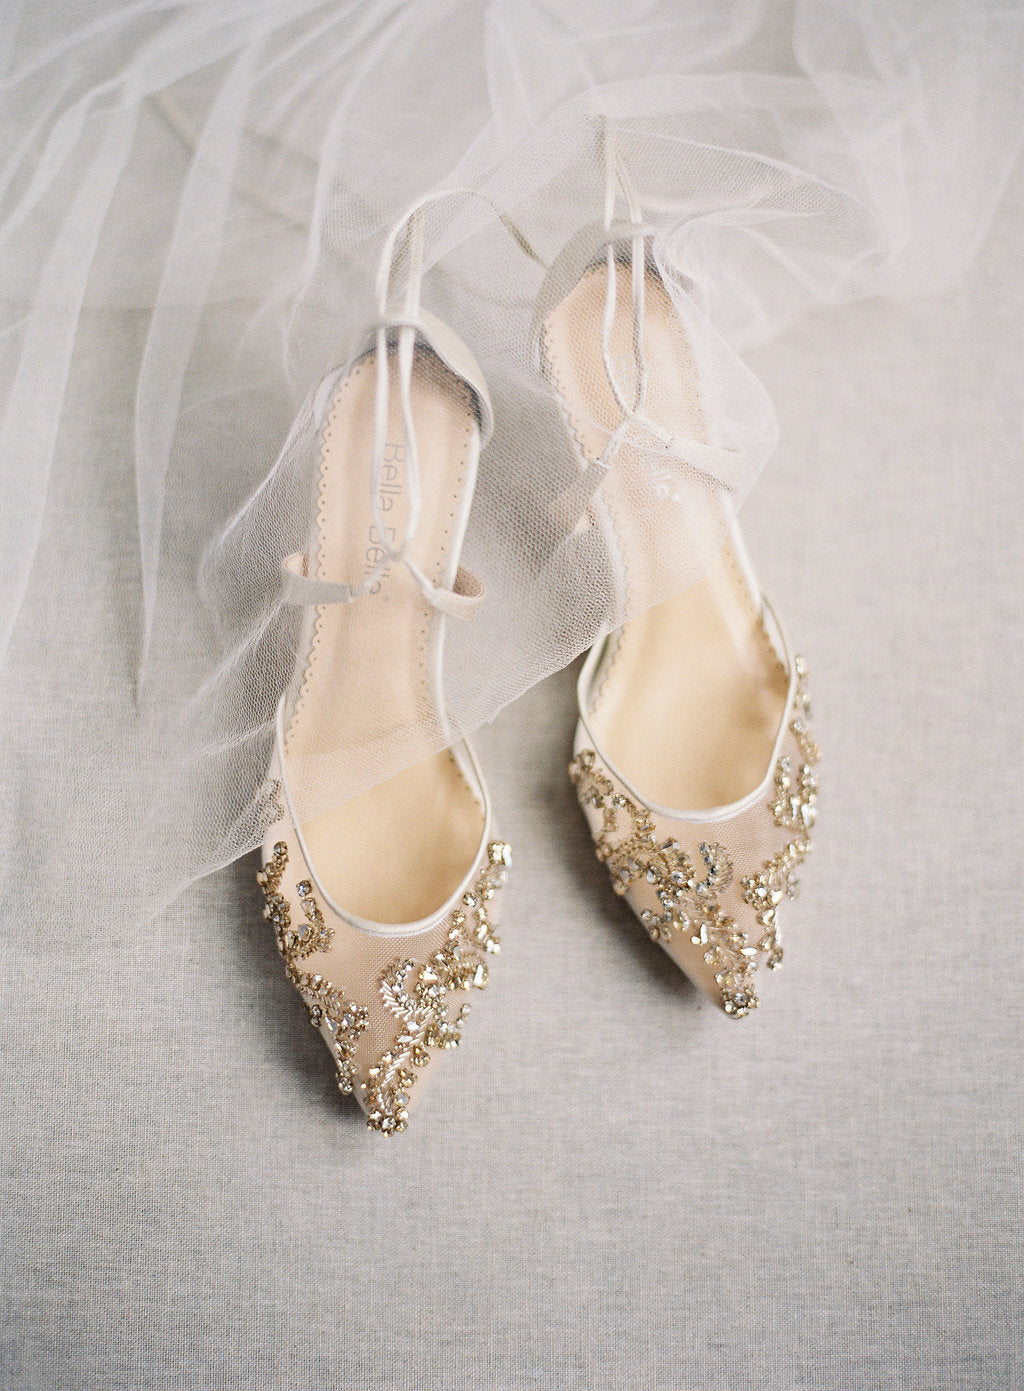 bella belle frances champagne jewel low heel wedding shoe